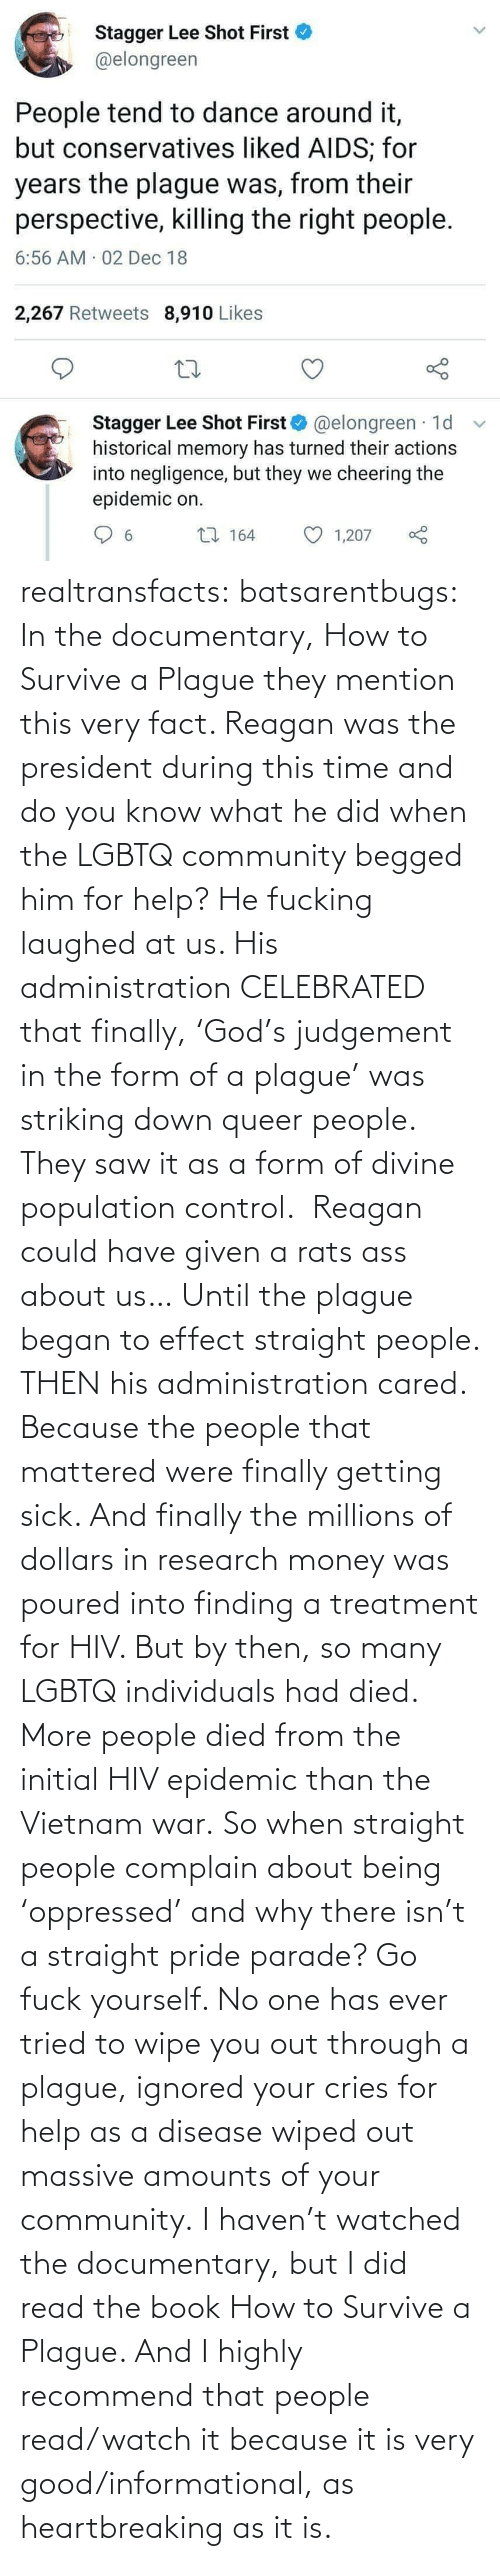 president: Stagger Lee Shot First  @elongreen  People tend to dance around it,  but conservatives liked AIDS; for  years the plague was, from their  perspective, killing the right people.  6:56 AM 02 Dec 18  2,267 Retweets 8,910 Likes  Stagger Lee Shot First O @elongreen · 1d  historical memory has turned their actions  into negligence, but they we cheering the  epidemic on.  27 164  1,207  6. realtransfacts:  batsarentbugs:  In the documentary, How to Survive a Plague they mention this very fact. Reagan was the president during this time and do you know what he did when the LGBTQ community begged him for help? He fucking laughed at us. His administration CELEBRATED that finally, 'God's judgement in the form of a plague' was striking down queer people.  They saw it as a form of divine population control.  Reagan could have given a rats ass about us… Until the plague began to effect straight people. THEN his administration cared. Because the people that mattered were finally getting sick. And finally the millions of dollars in research money was poured into finding a treatment for HIV. But by then, so many LGBTQ individuals had died.  More people died from the initial HIV epidemic than the Vietnam war. So when straight people complain about being 'oppressed' and why there isn't a straight pride parade? Go fuck yourself. No one has ever tried to wipe you out through a plague, ignored your cries for help as a disease wiped out massive amounts of your community.  I haven't watched the documentary, but I did read the book  How to Survive a Plague. And I highly recommend that people read/watch it because it is very good/informational, as heartbreaking as it is.